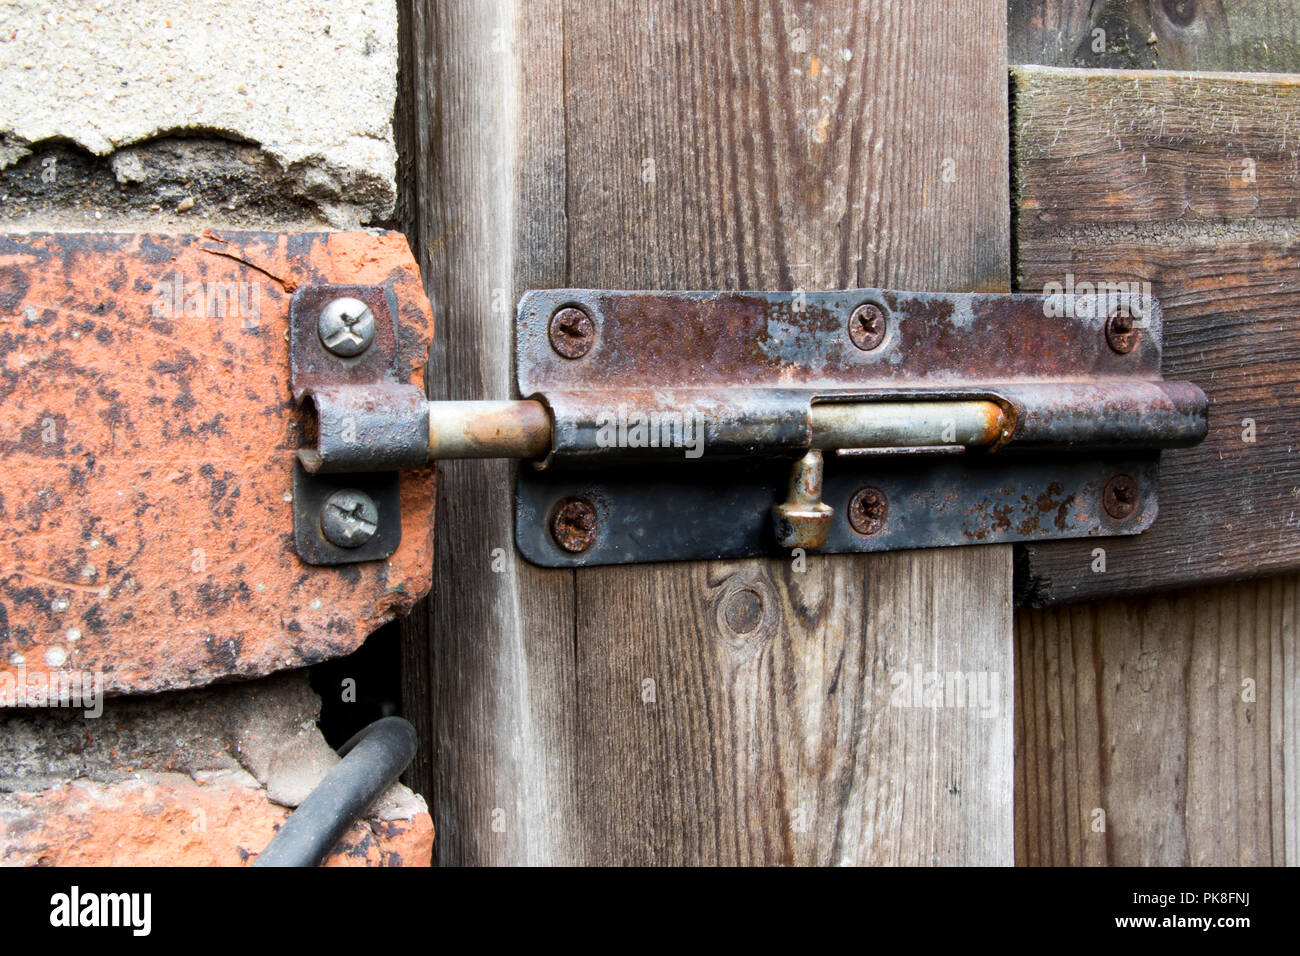 Rusty gate lock. Wood fence gate and house brick close up. - Stock Image